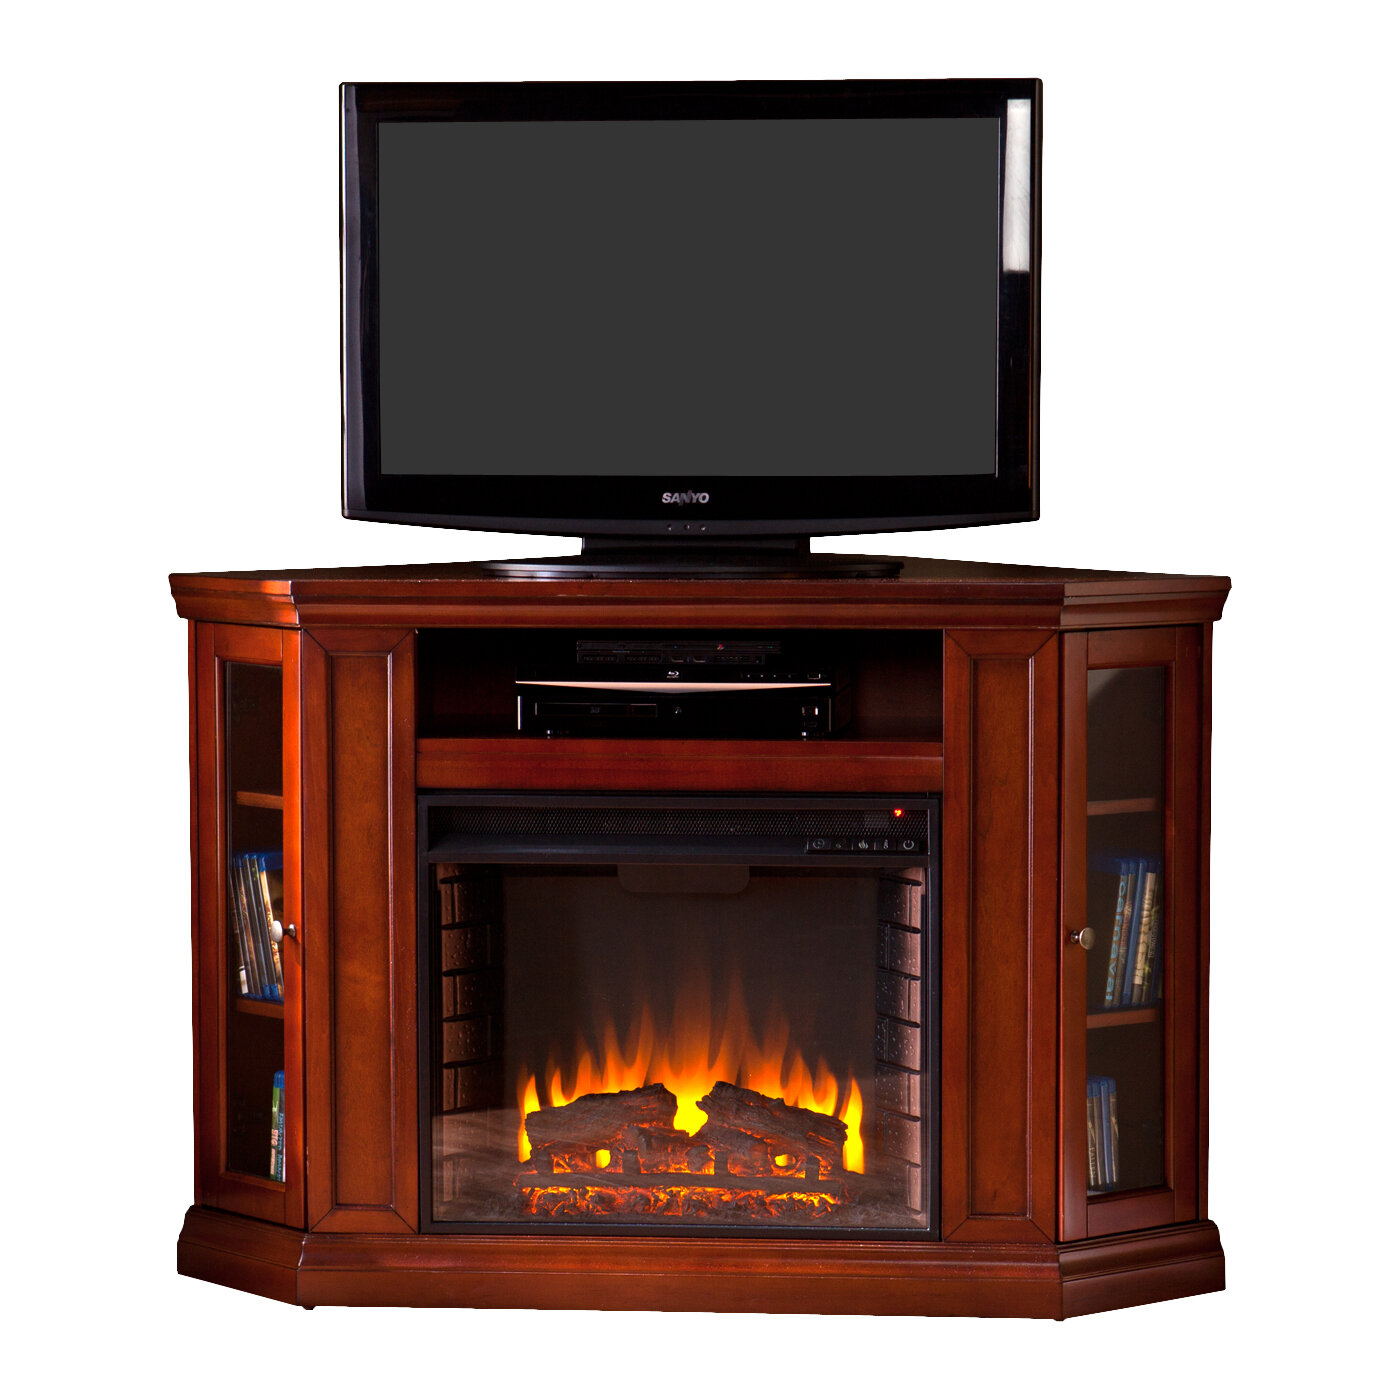 Woodbridge Home Designs 48 Tv Stand With Electric Fireplace Ebay